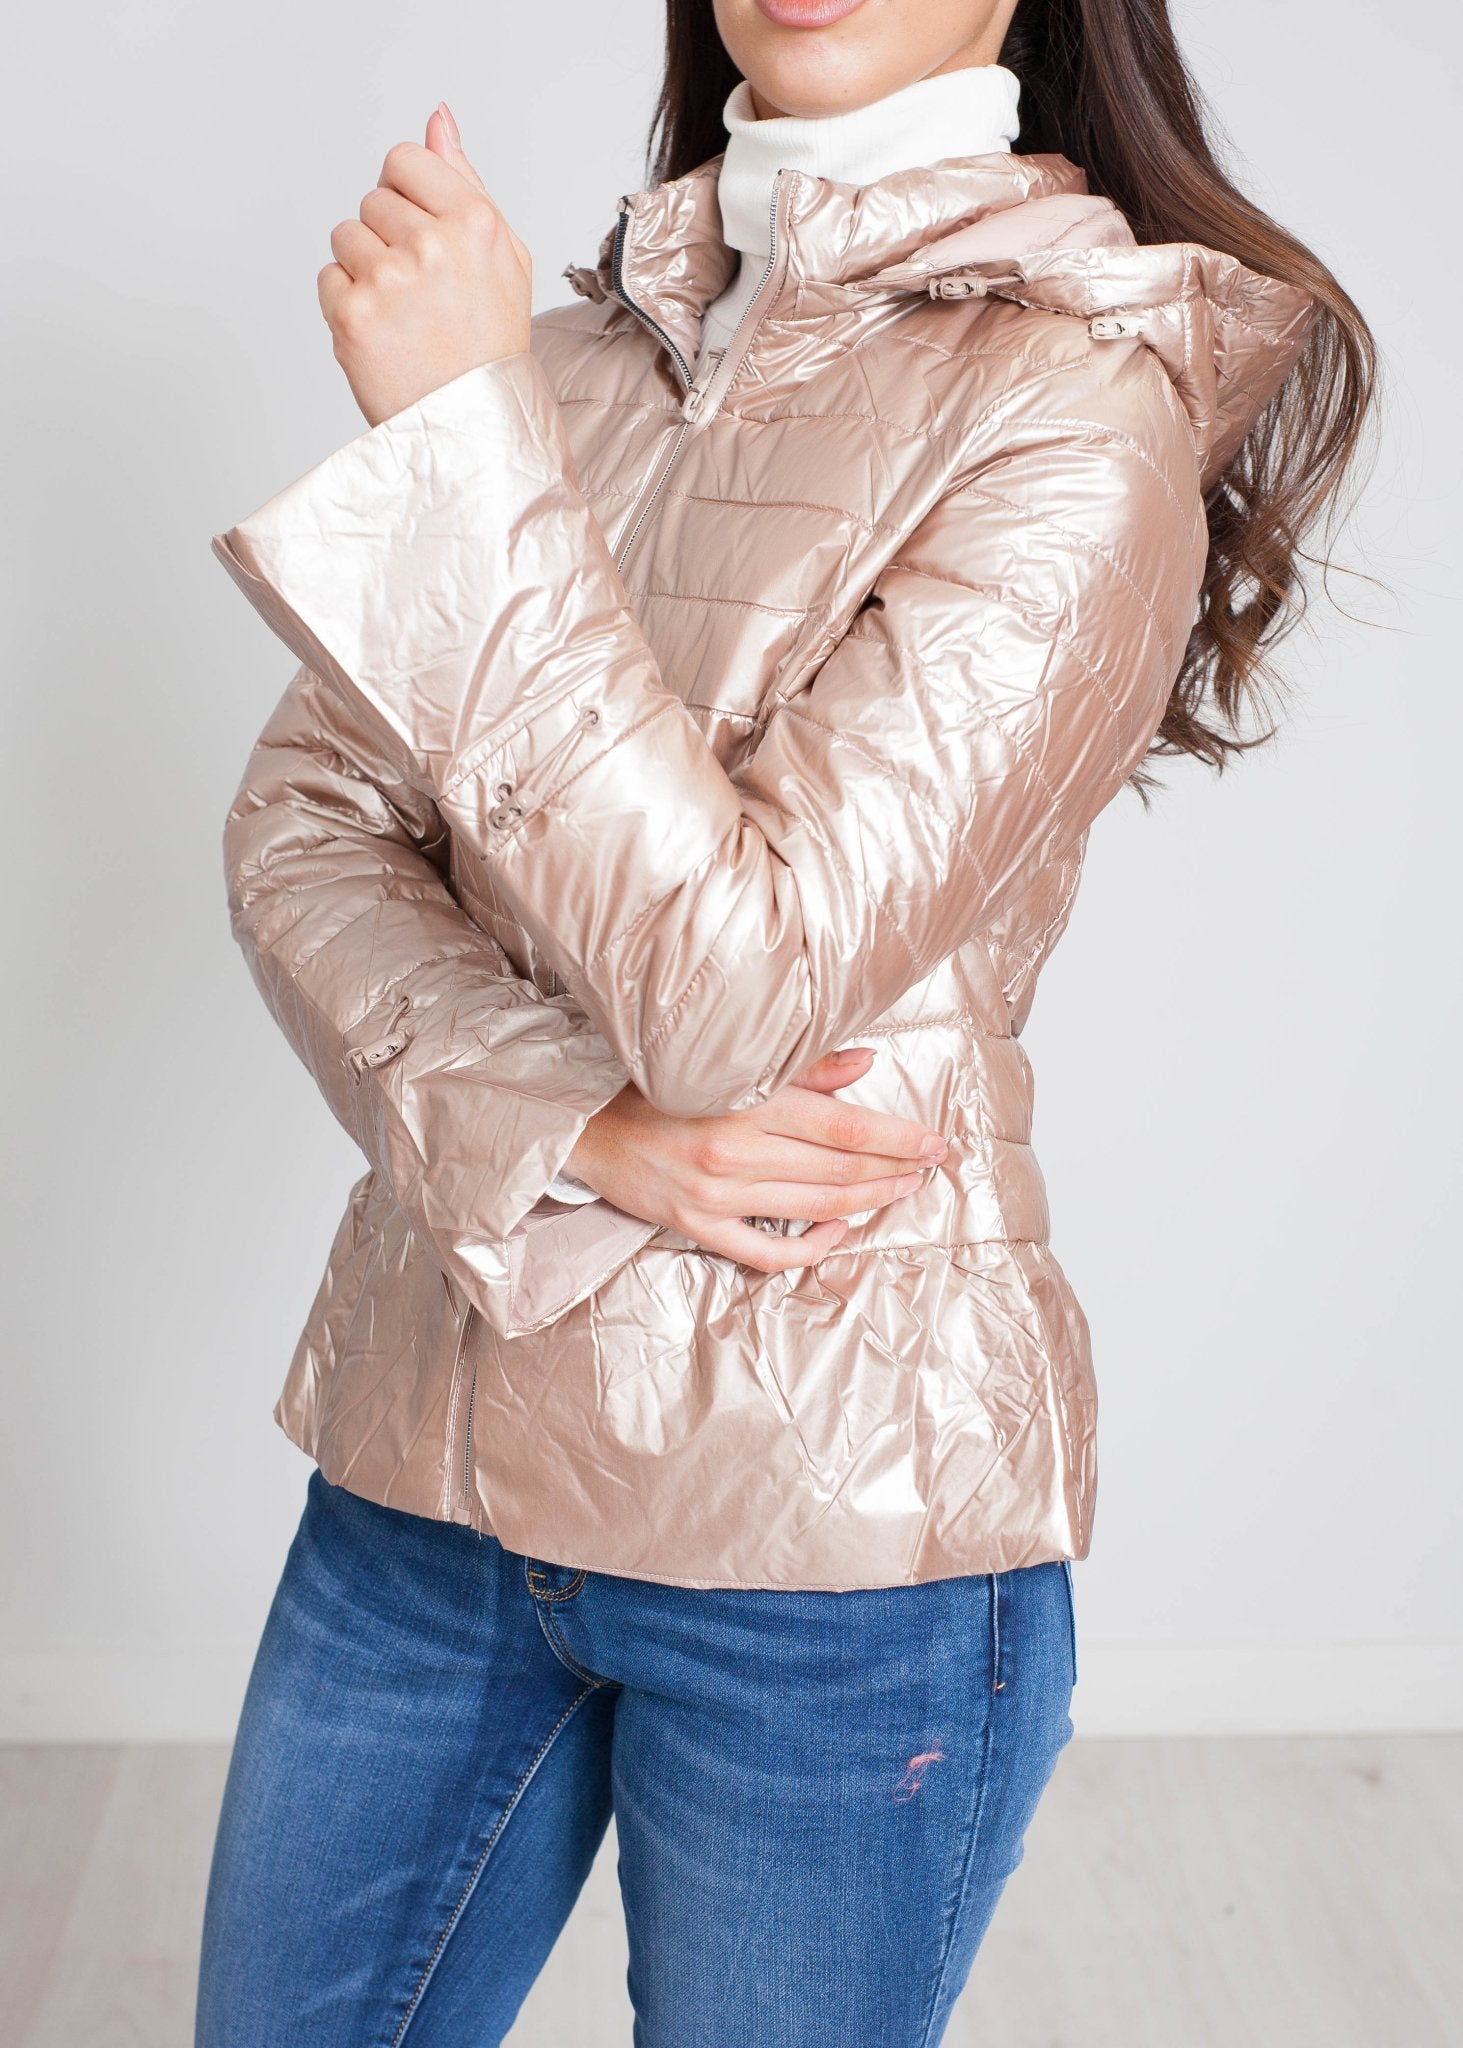 Alba Quilted Coat In Champagne - The Walk in Wardrobe